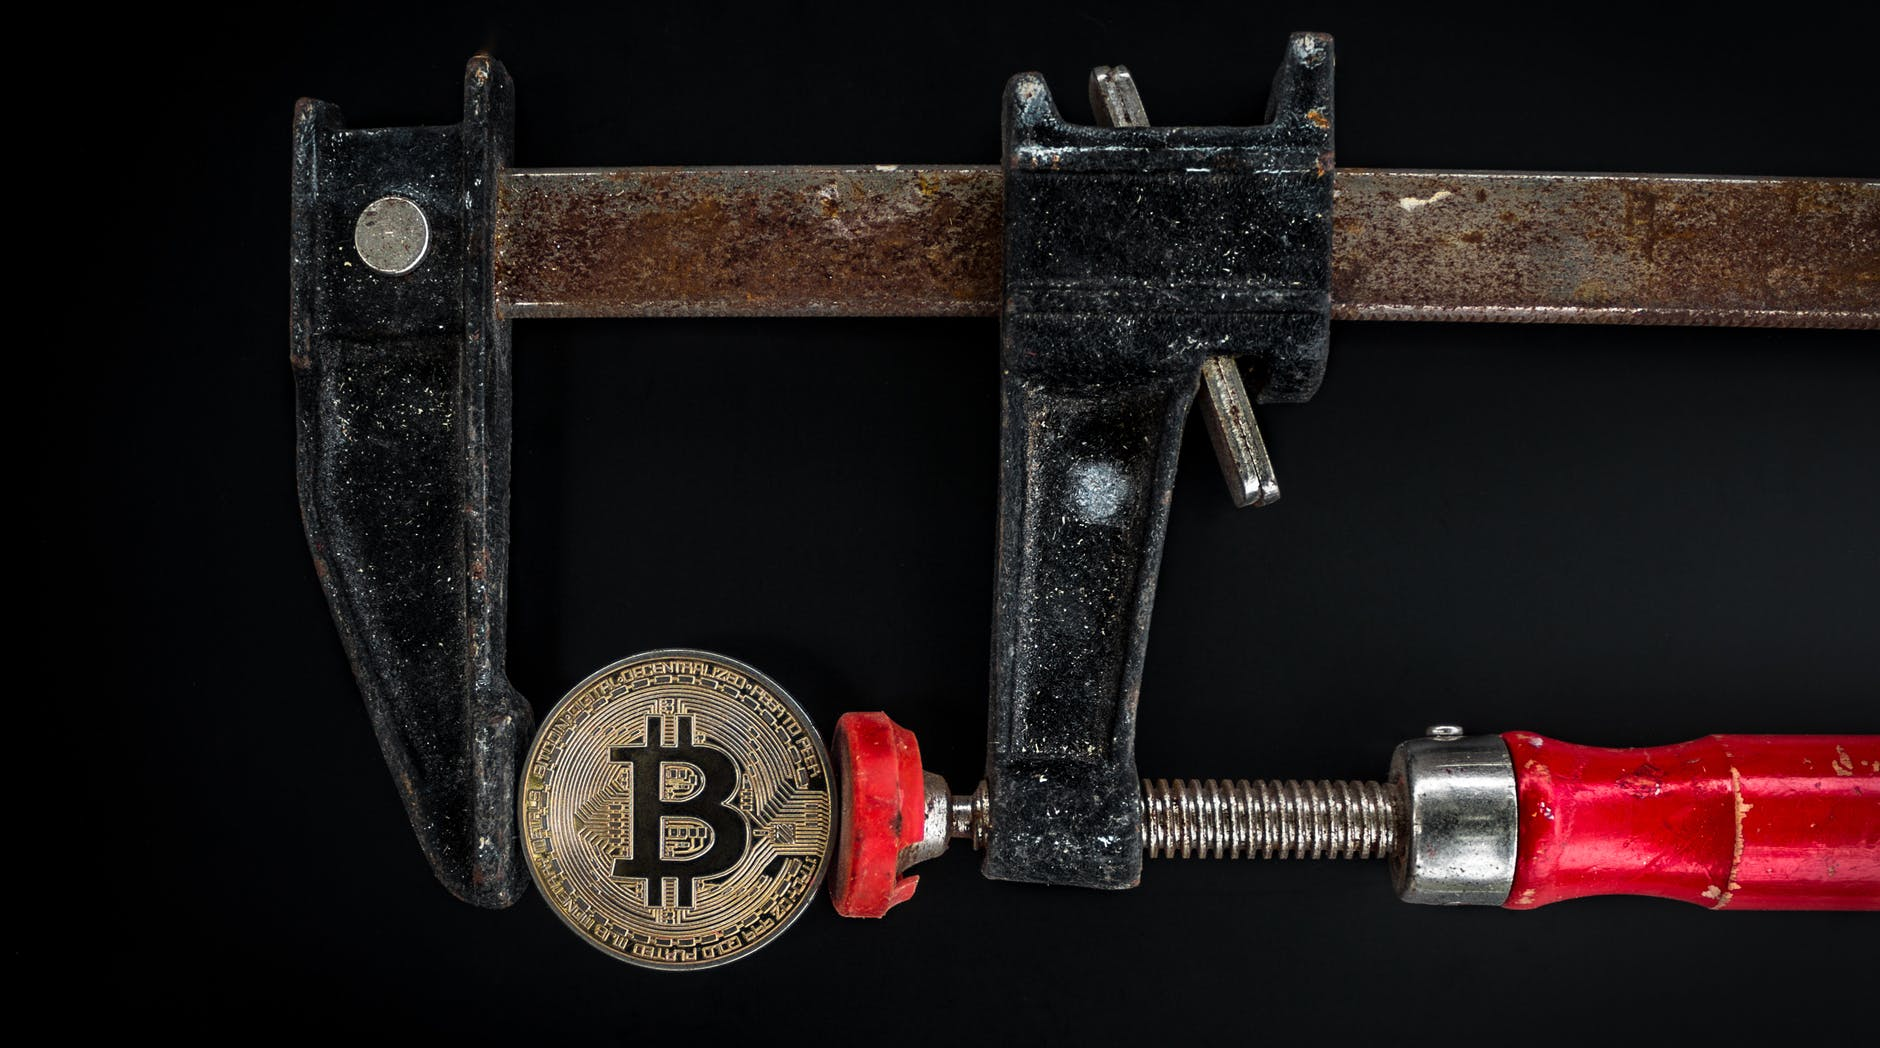 bitcoin clipped on a rusty vernier Caliper